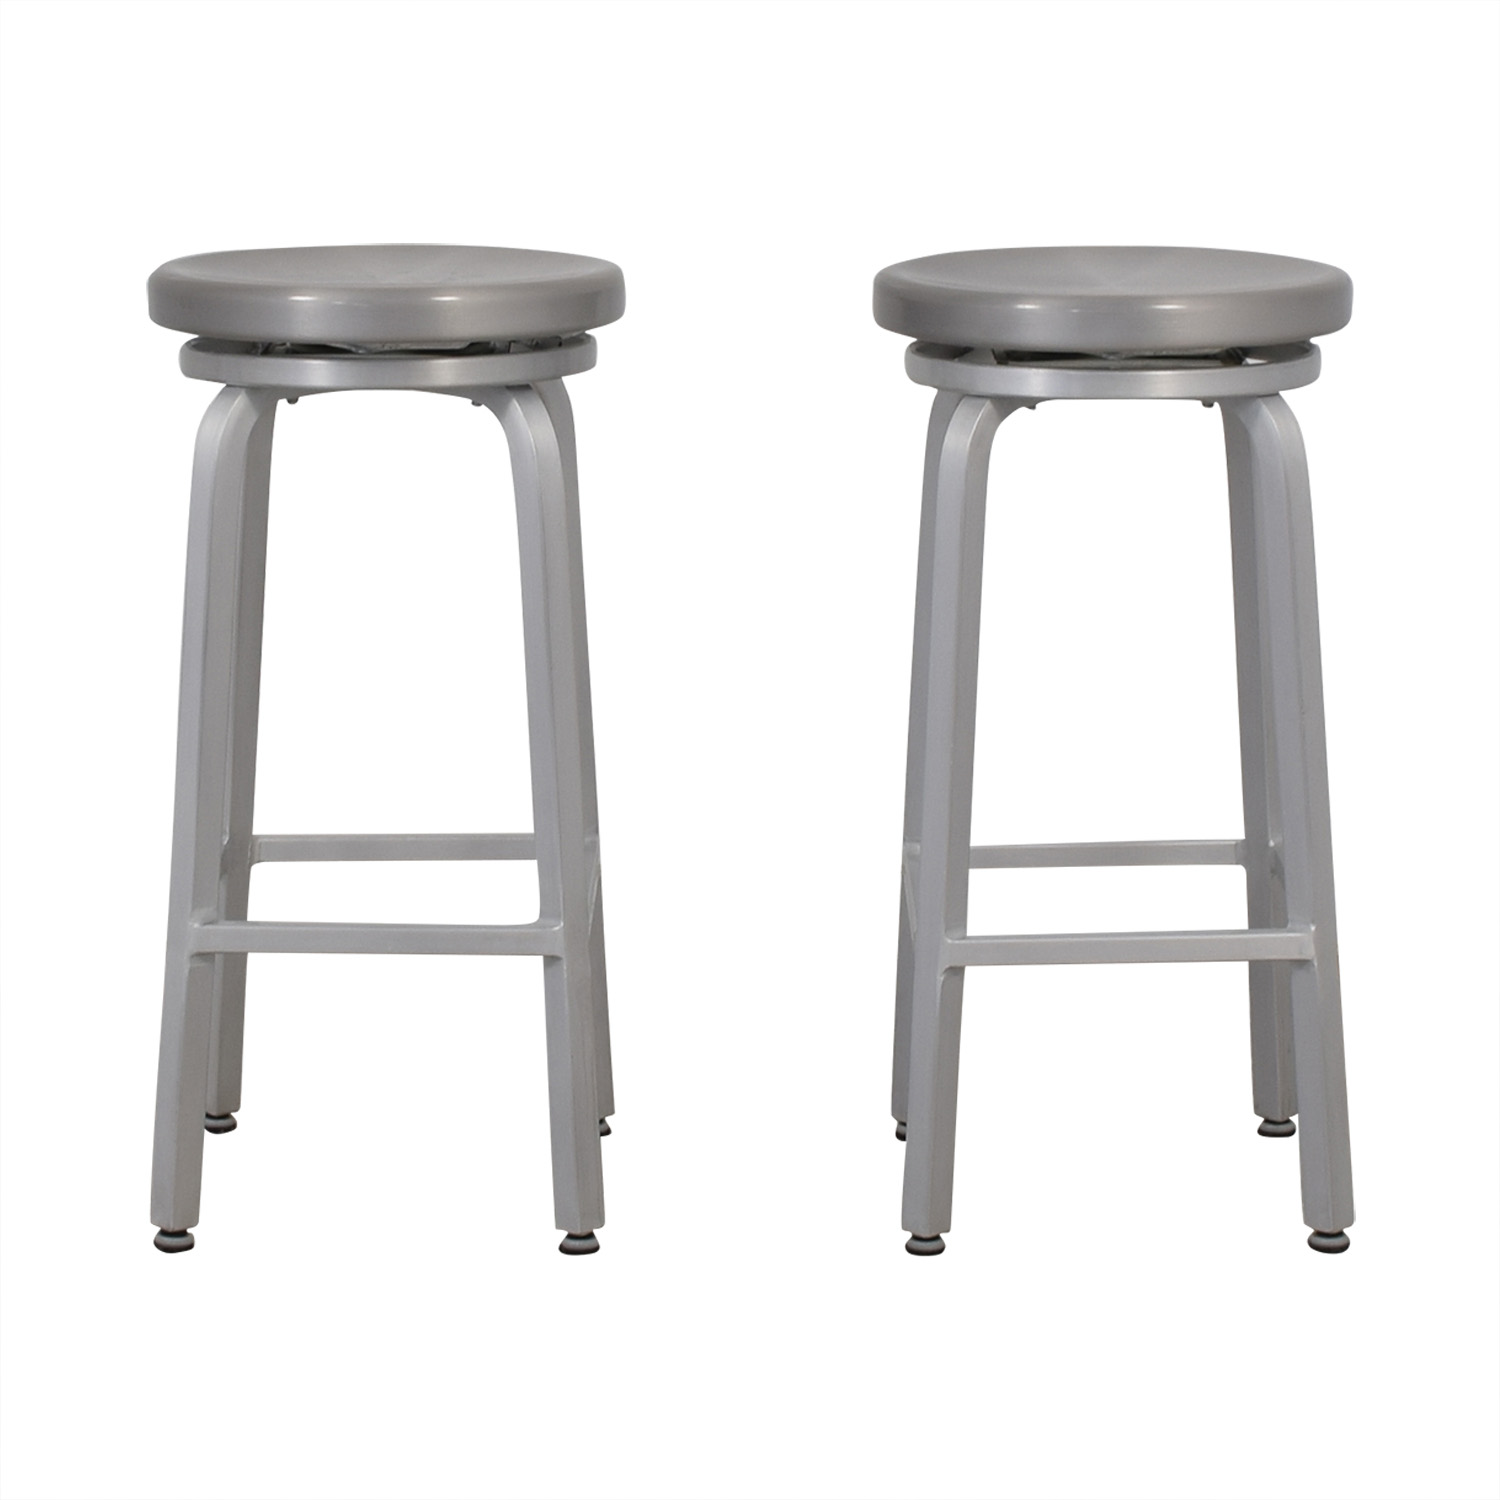 Crate & Barrel Crate & Barrel Stainless Steel Stools for sale